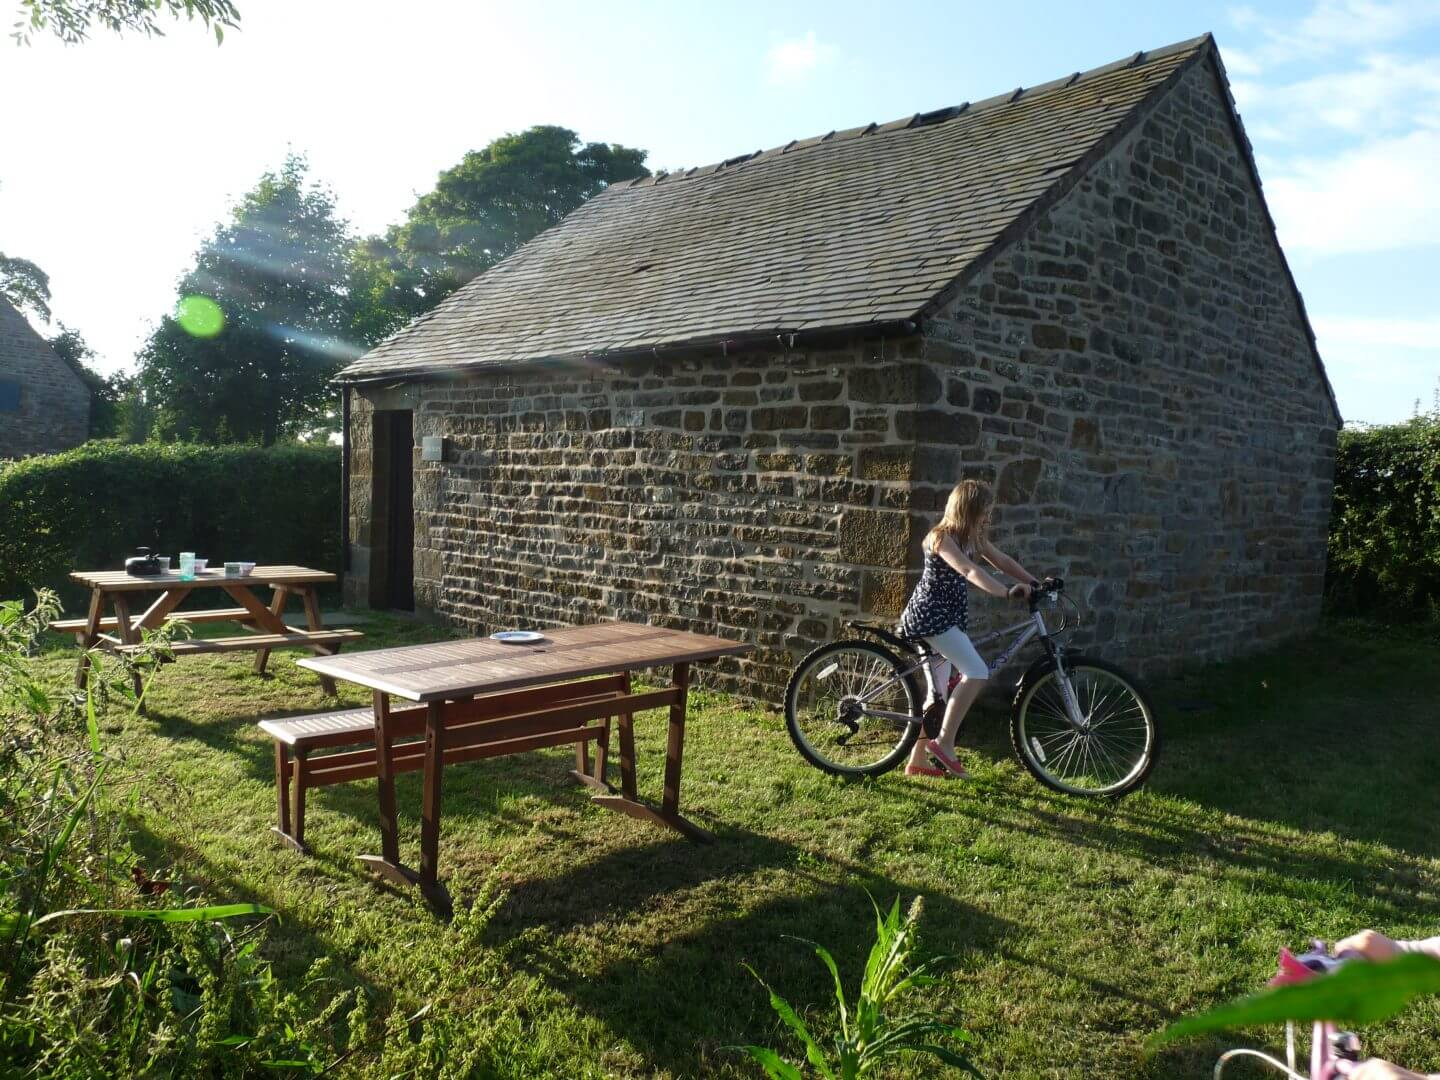 Butterton Camping Barns Waterslacks and Wills Barns - self catering - family holiday - glamping - Staffordshire